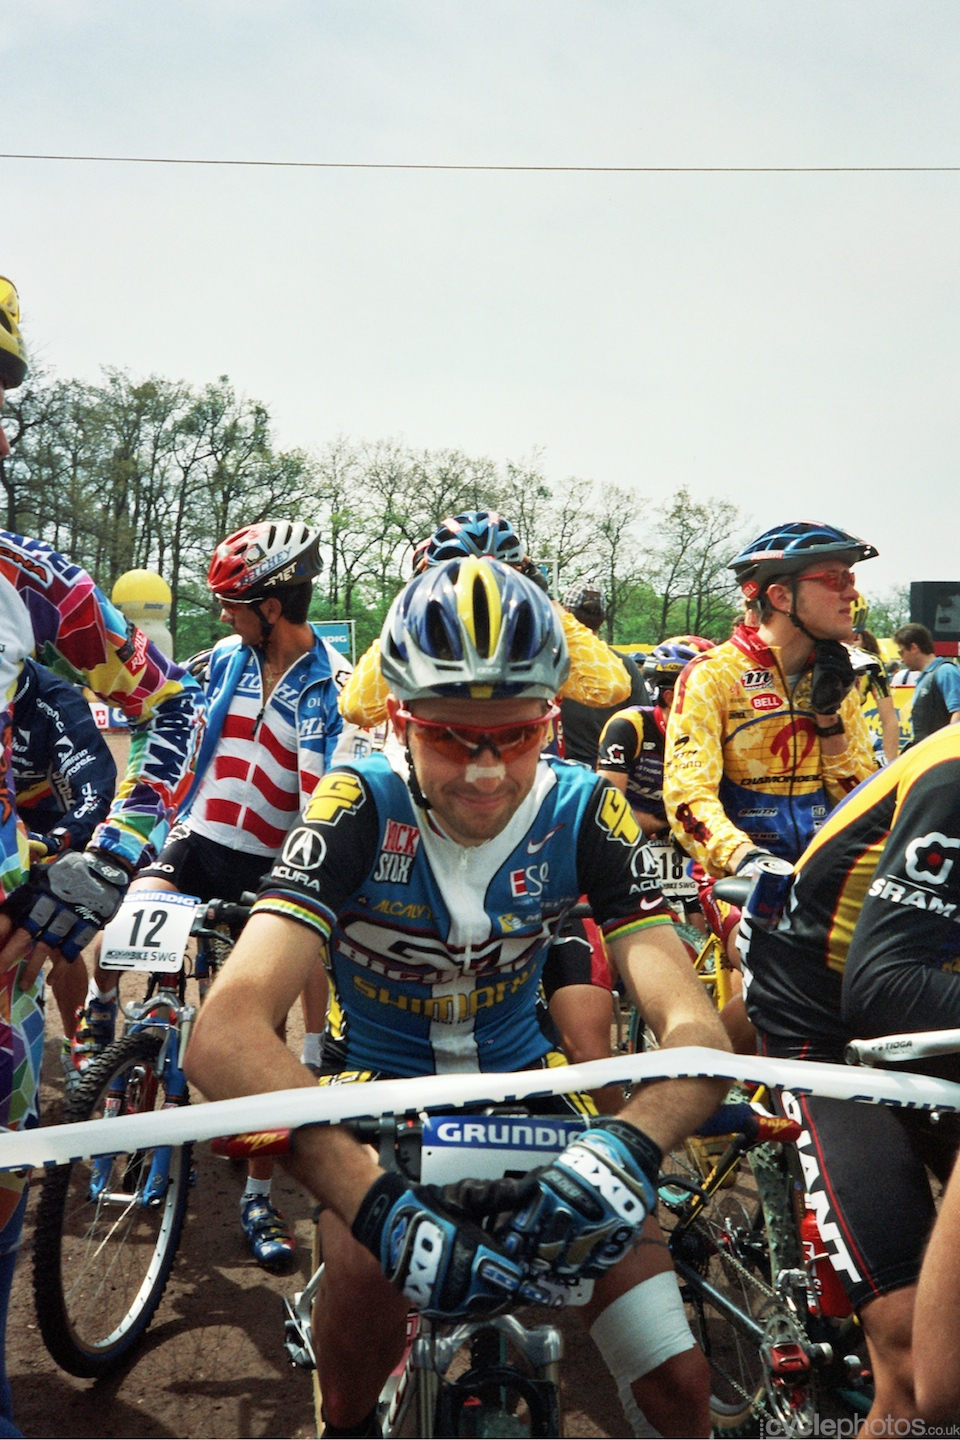 Jerome Chiotti smiles at me. Note Costa Rican Jose Andres Brenes on the left in Ritchey kit.